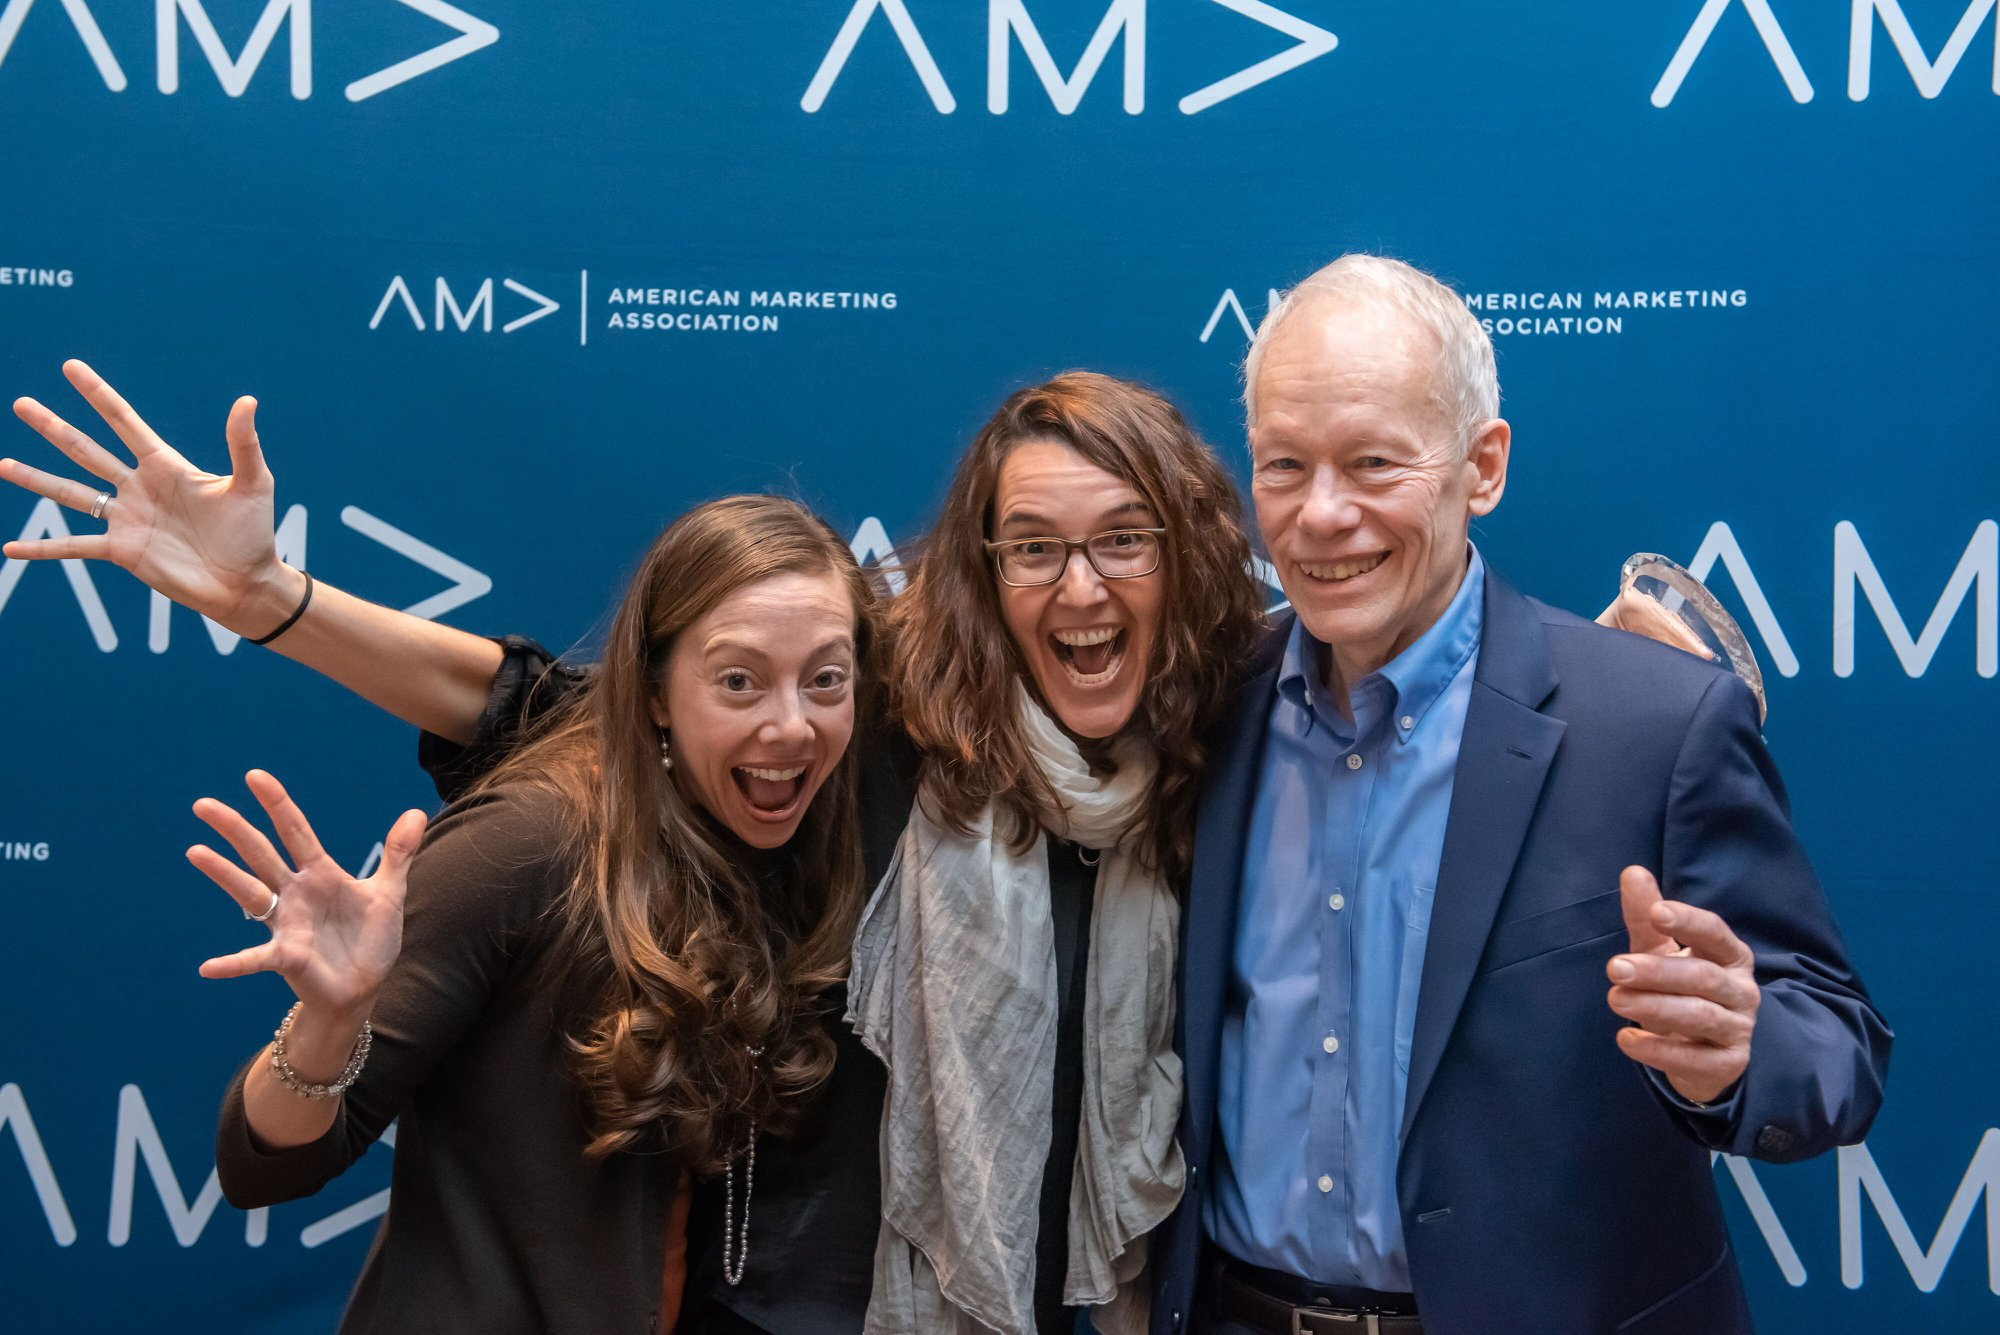 From left to right: Andrea Morales Ketcham, Eva Ascarza, and Don Lehmann at Winter AMA 2019